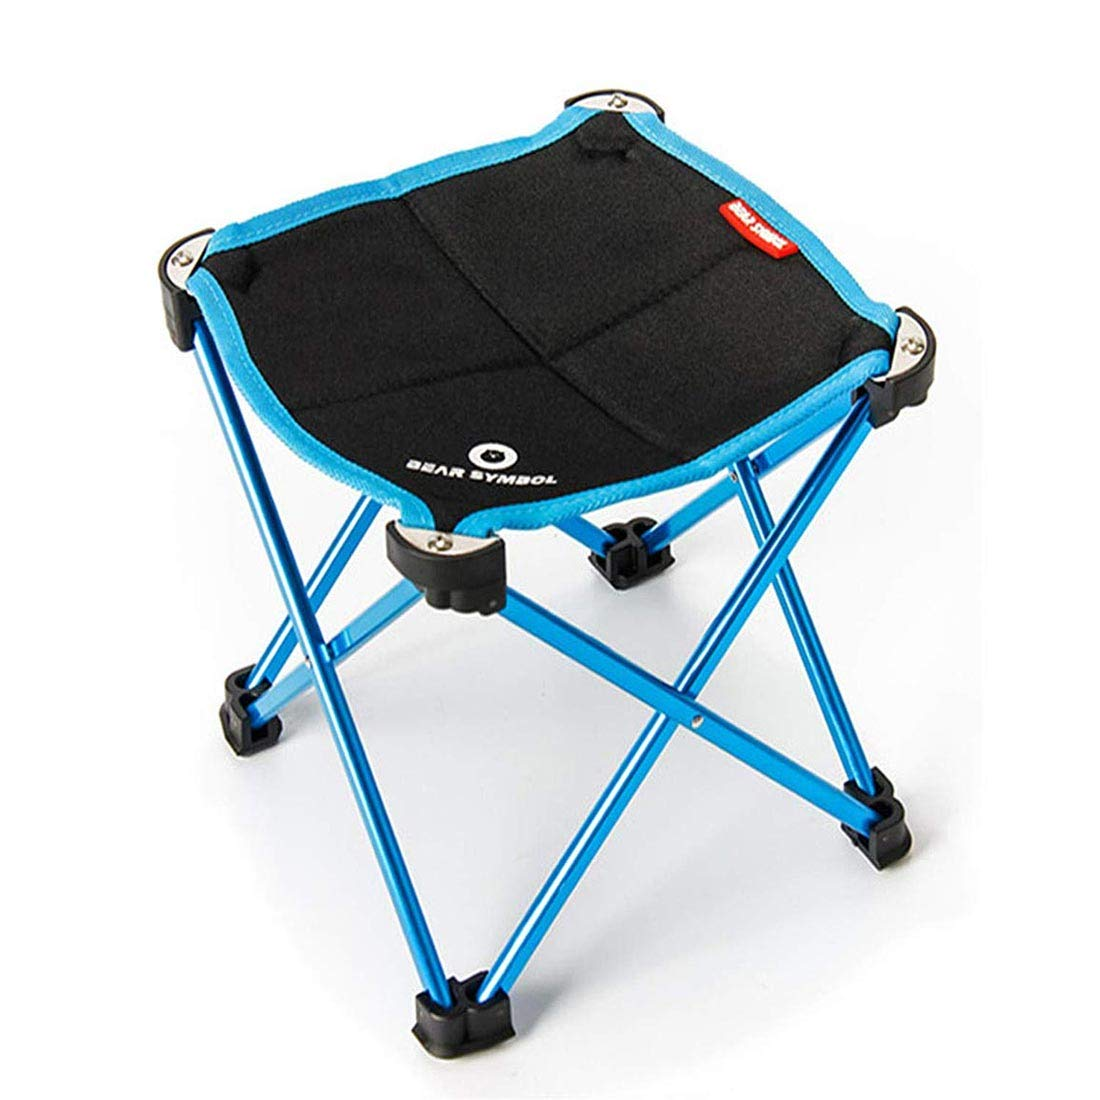 Ultralight Portable Camp Stool,Outdoor Folding Chair Made of 1680D Oxford Cloth and 7075 Aluminum Alloy,for BBQ Camping Fishing Hiking Beach,Withstand Up to 220lbs Capacity,for Adult and Kids.